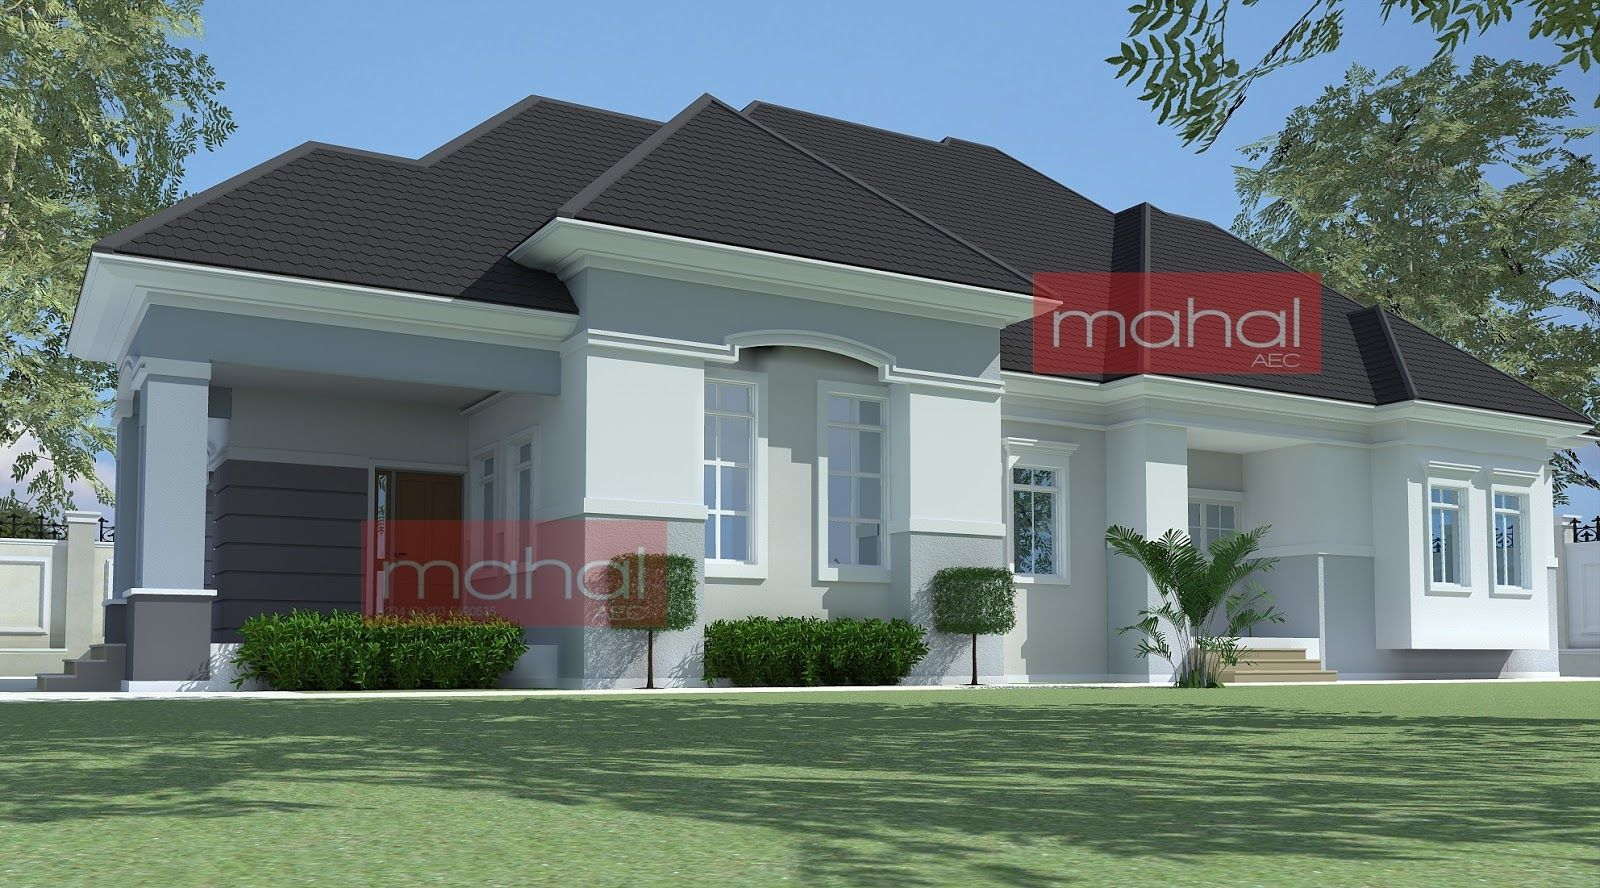 4 bedroom bungalow plan in nigeria 4 bedroom bungalow for Modern small bungalow designs